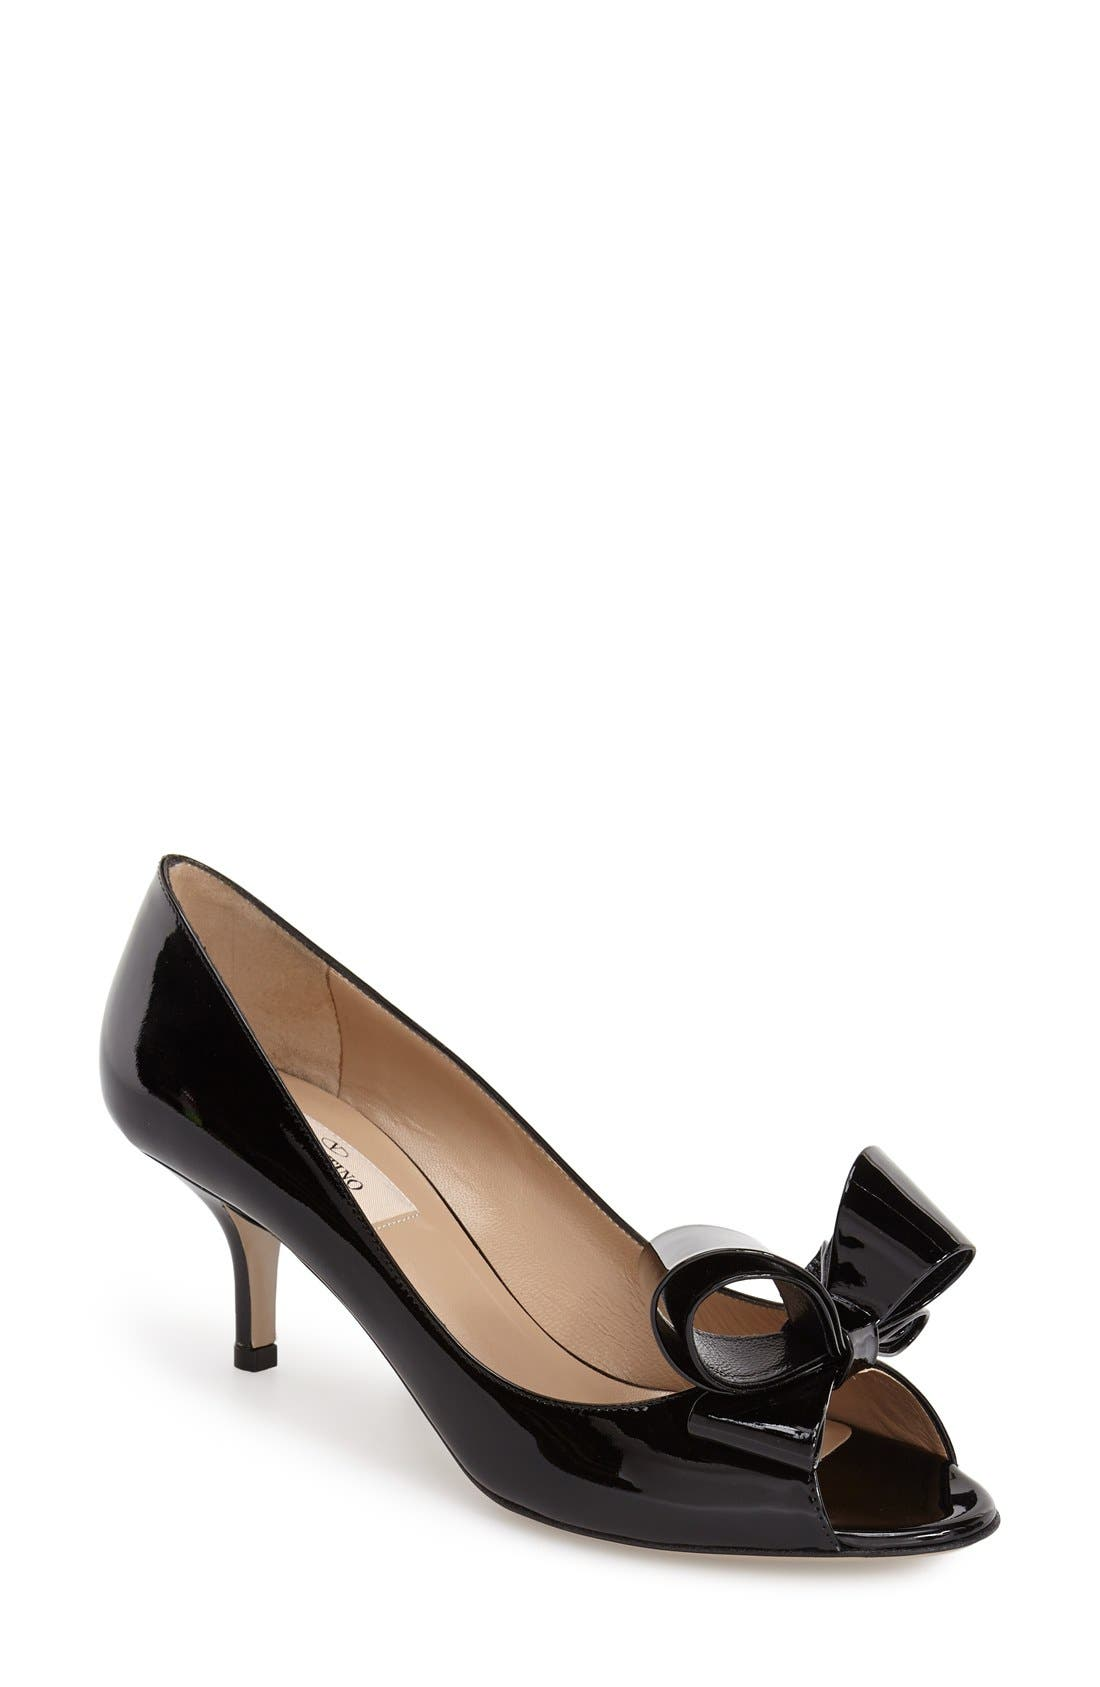 Main Image - VALENTINO GARAVANI Couture Bow Pump (Women)